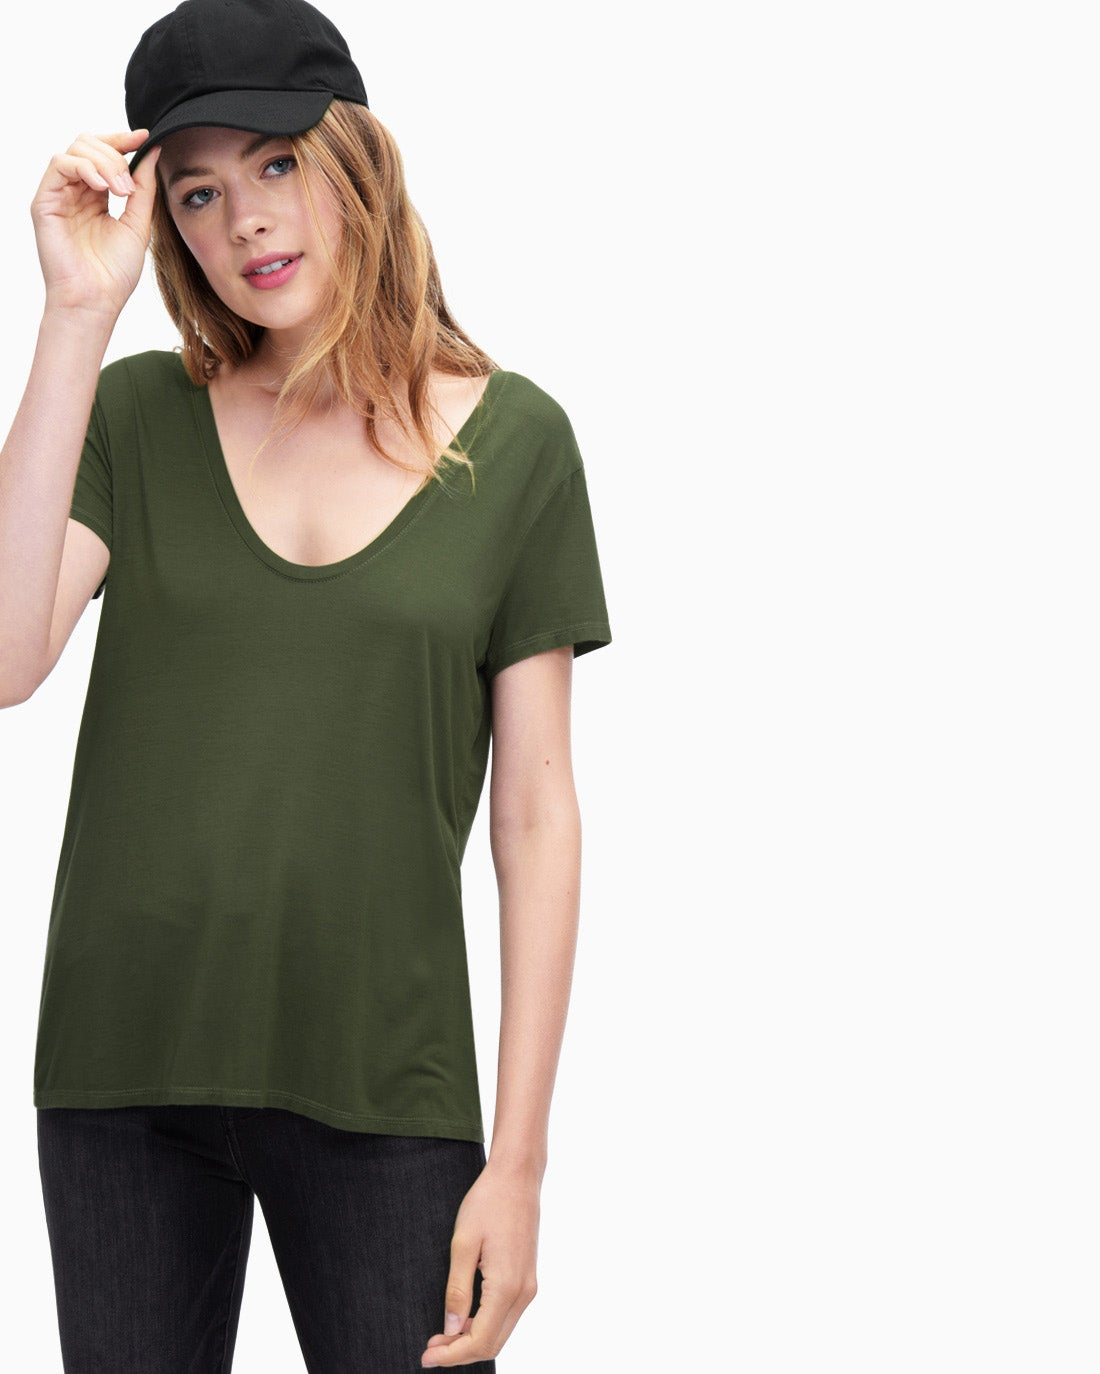 Splendid Women's Rayon Jersey Deep U-Neck Top